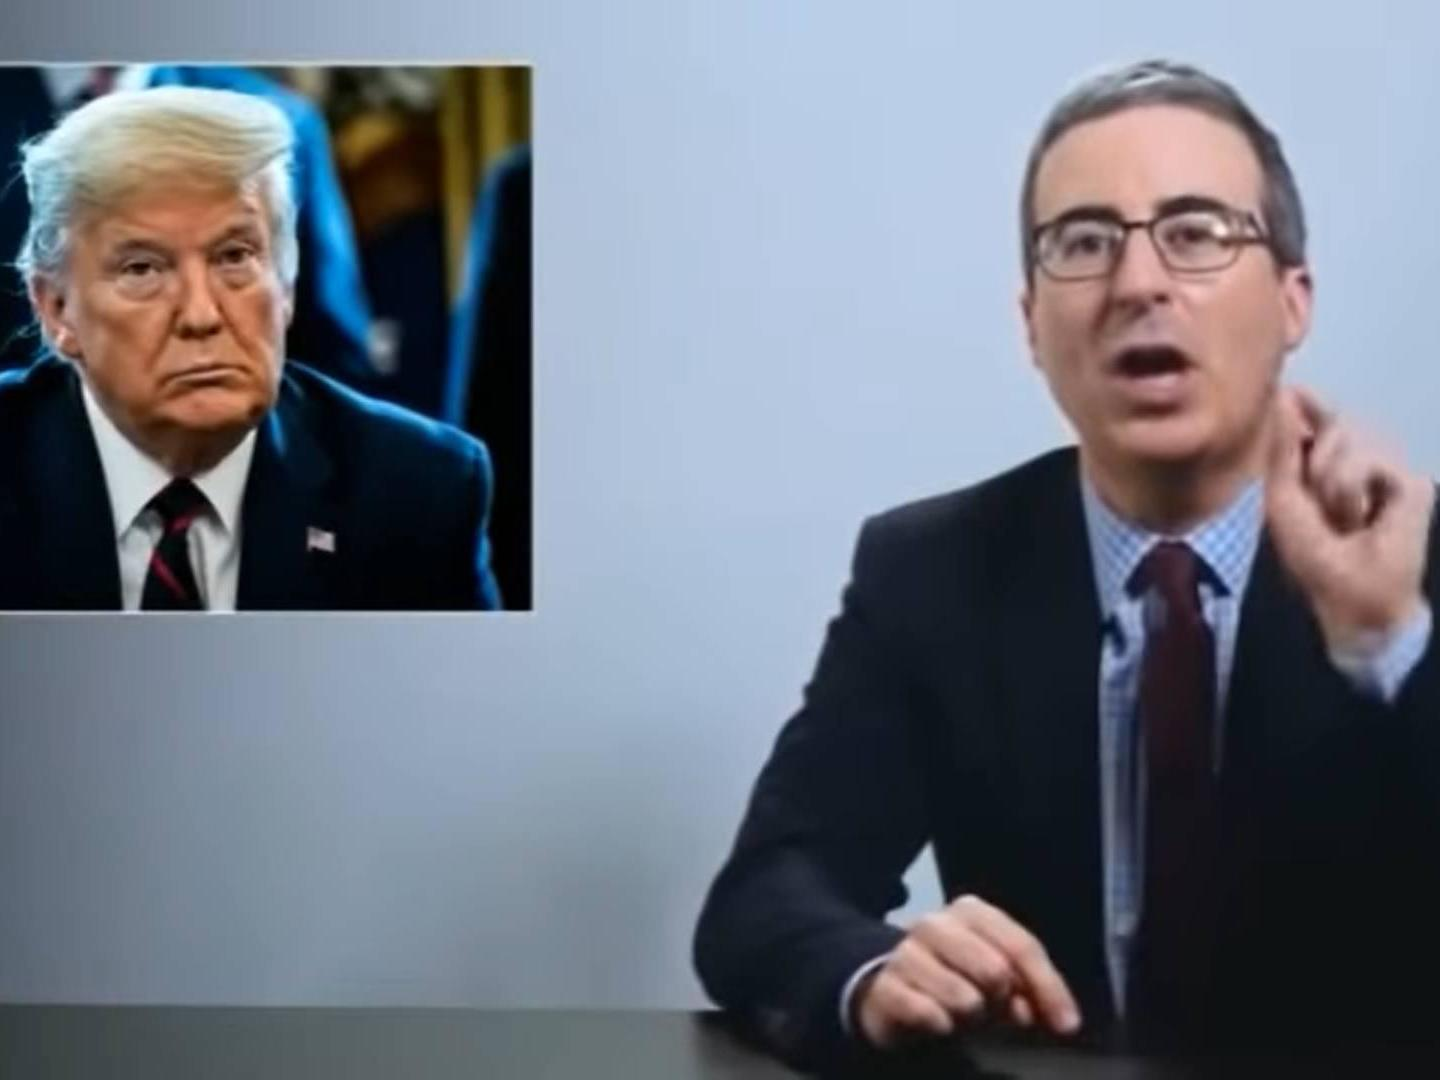 'No one is thinking about you': John Oliver slates Trump over coronavirus crisis